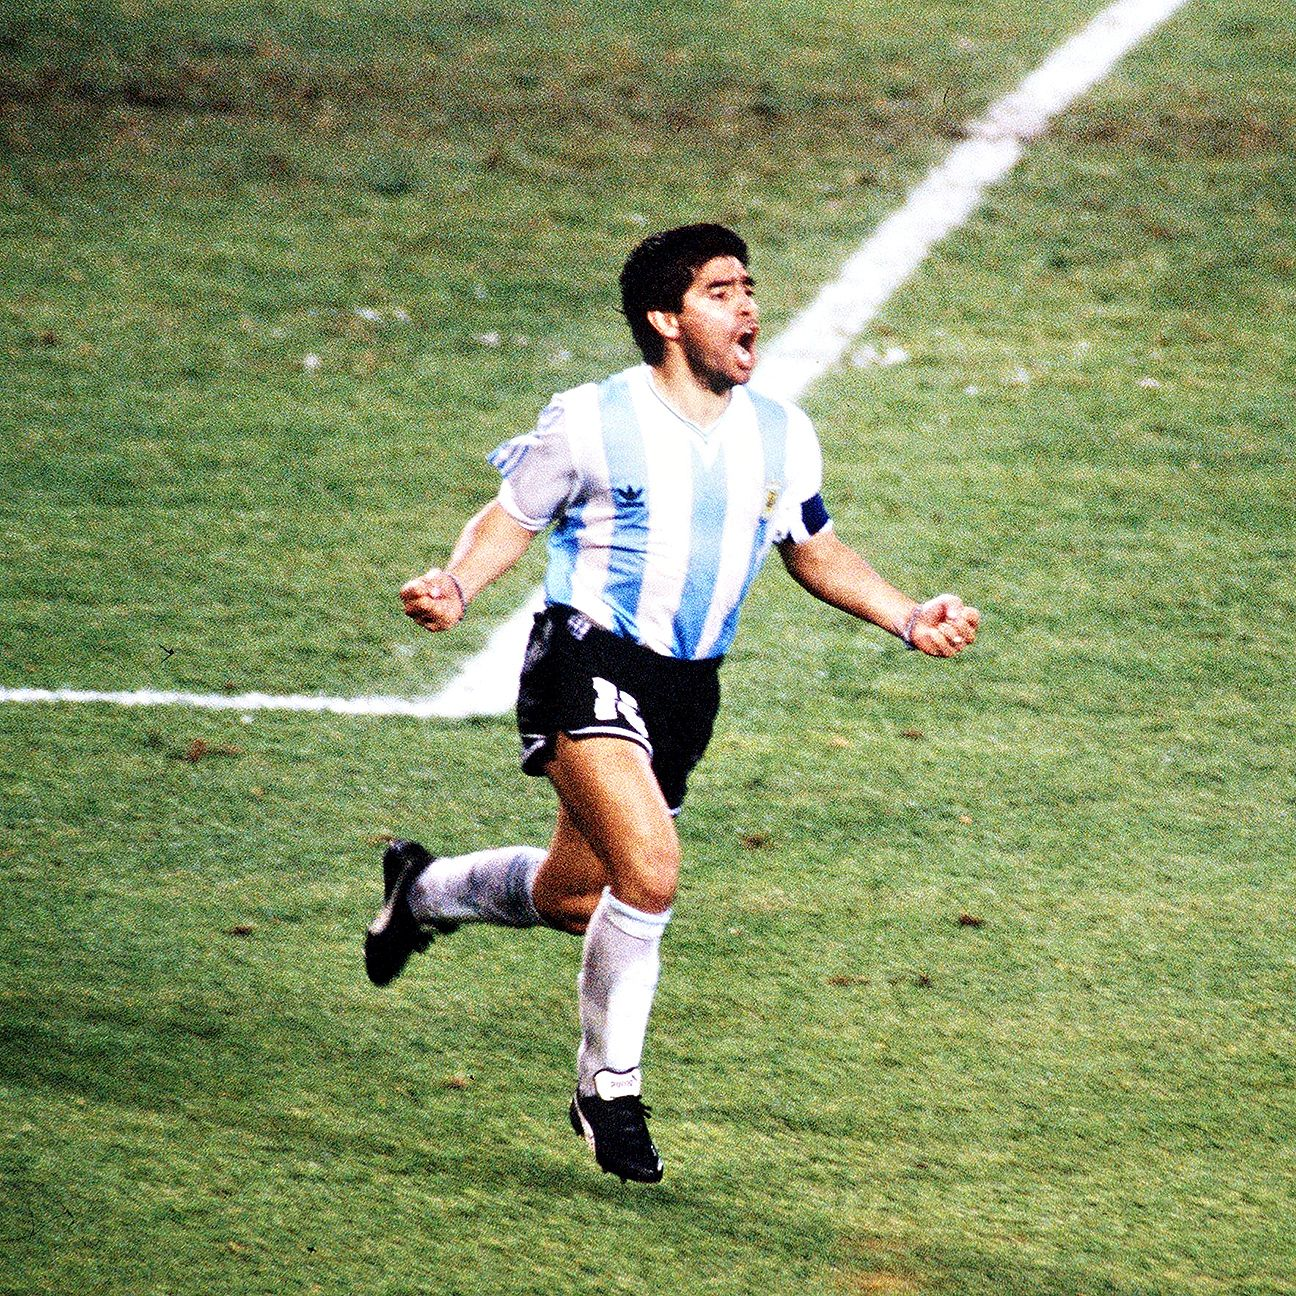 After powering Argentina to World Cup glory in 1986, Diego Maradona had his sights set on another triumph at Italia '90.